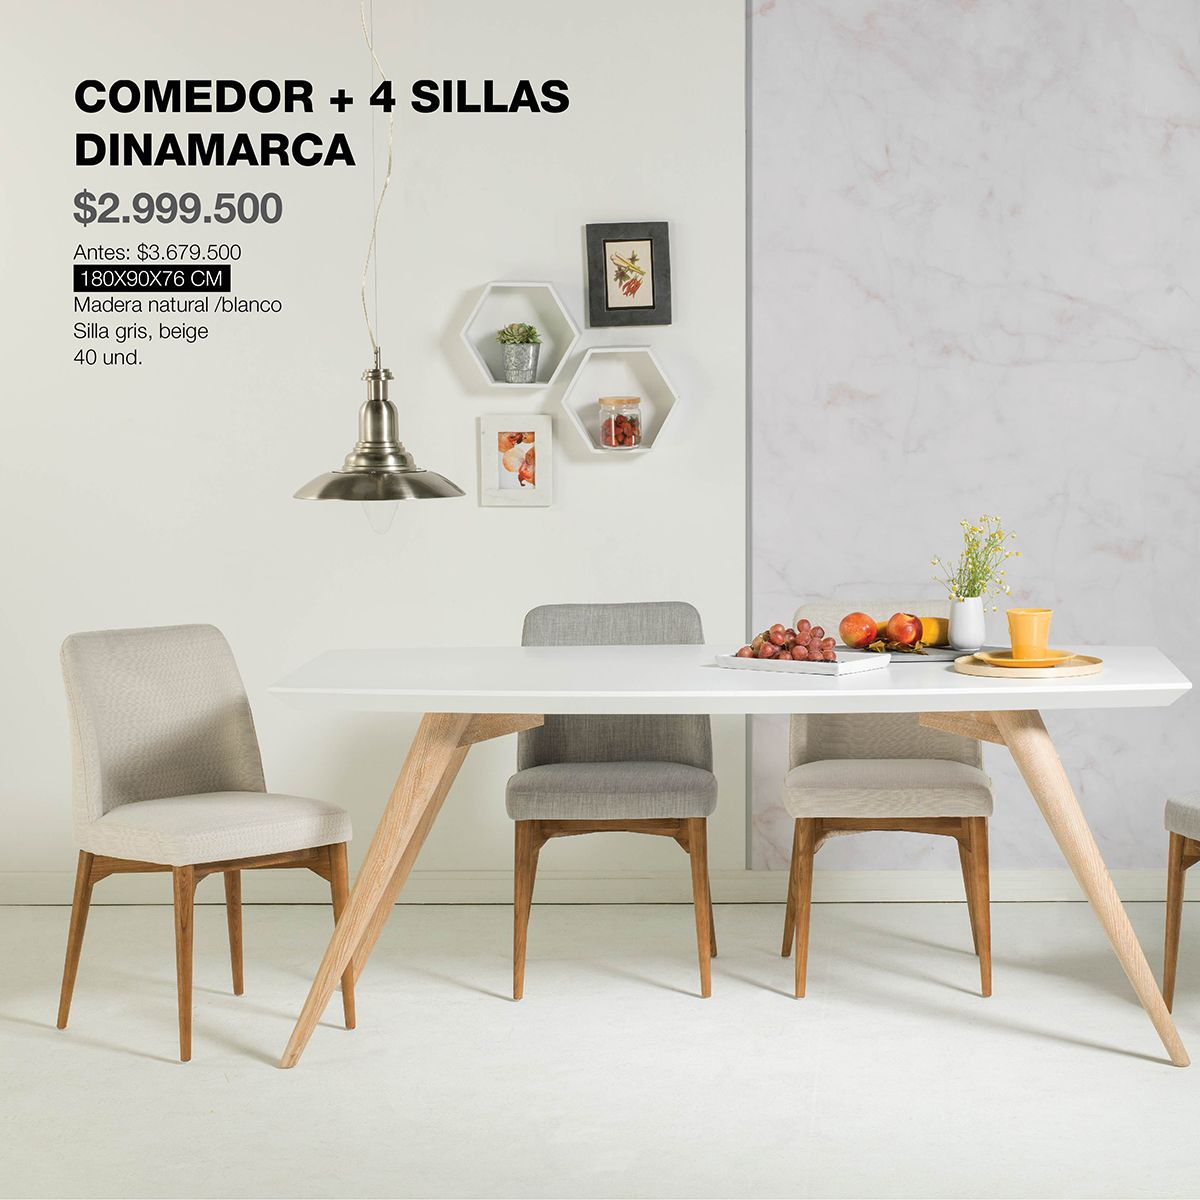 Comedor y sillas dinamarca dise ado en madera natural for Sillas comedor color gris